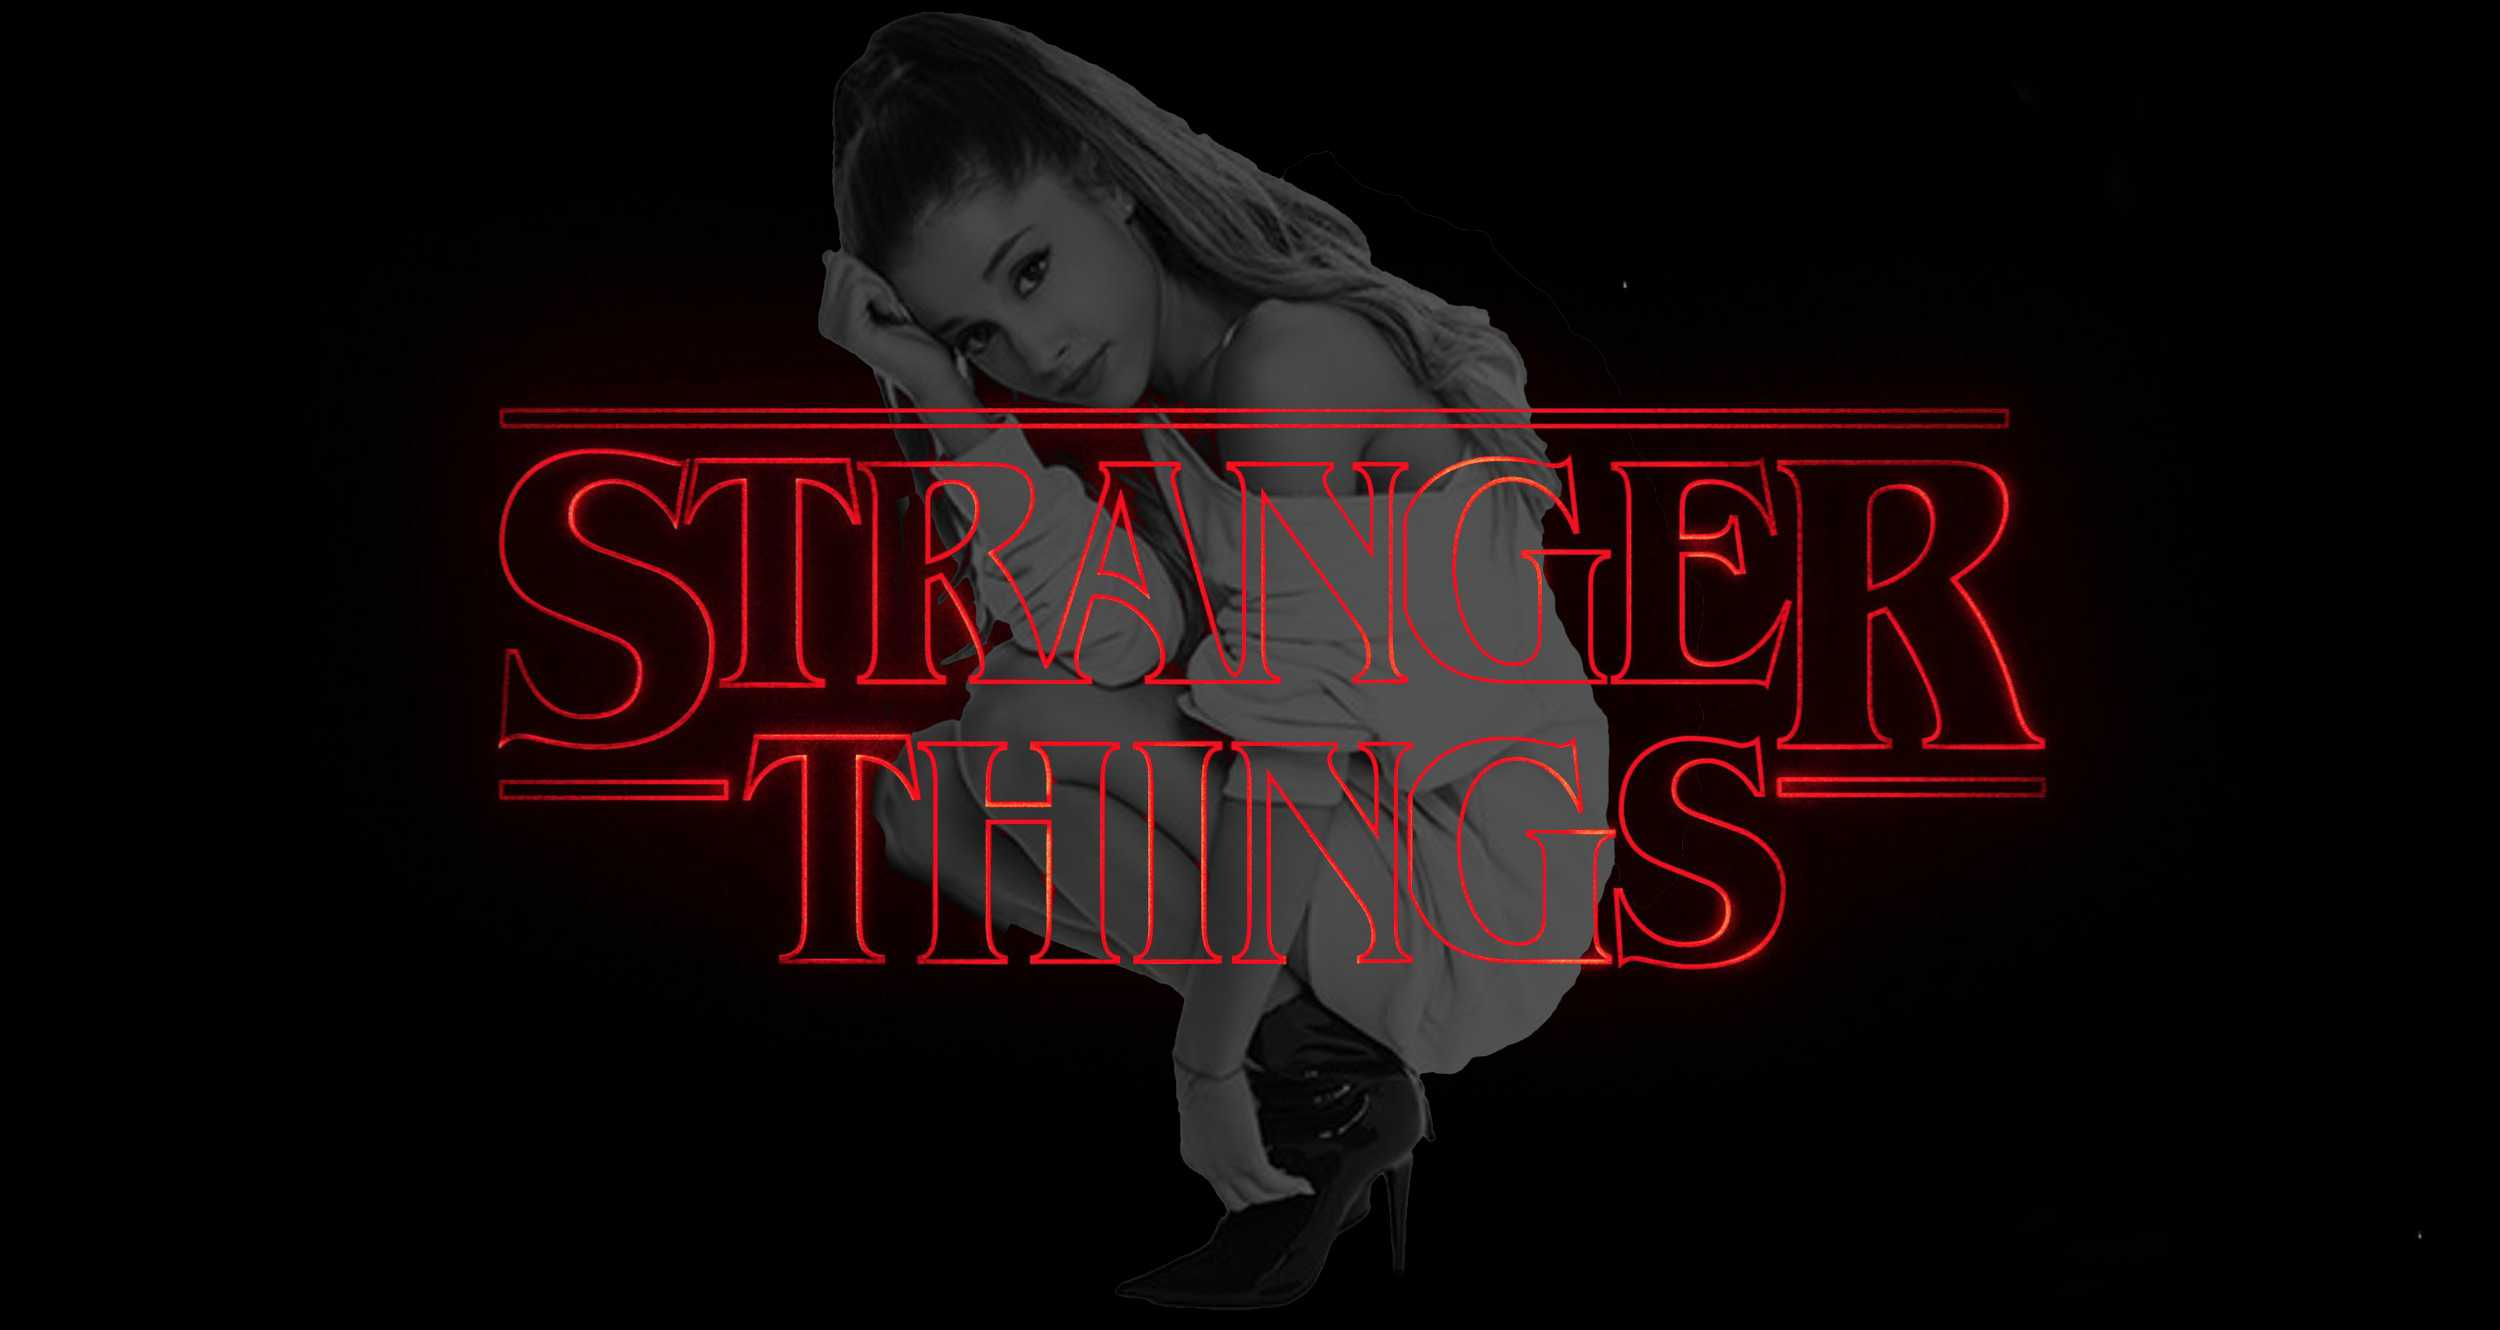 Stranger Things X Ariana Grande is a super sexy synth pop mashup